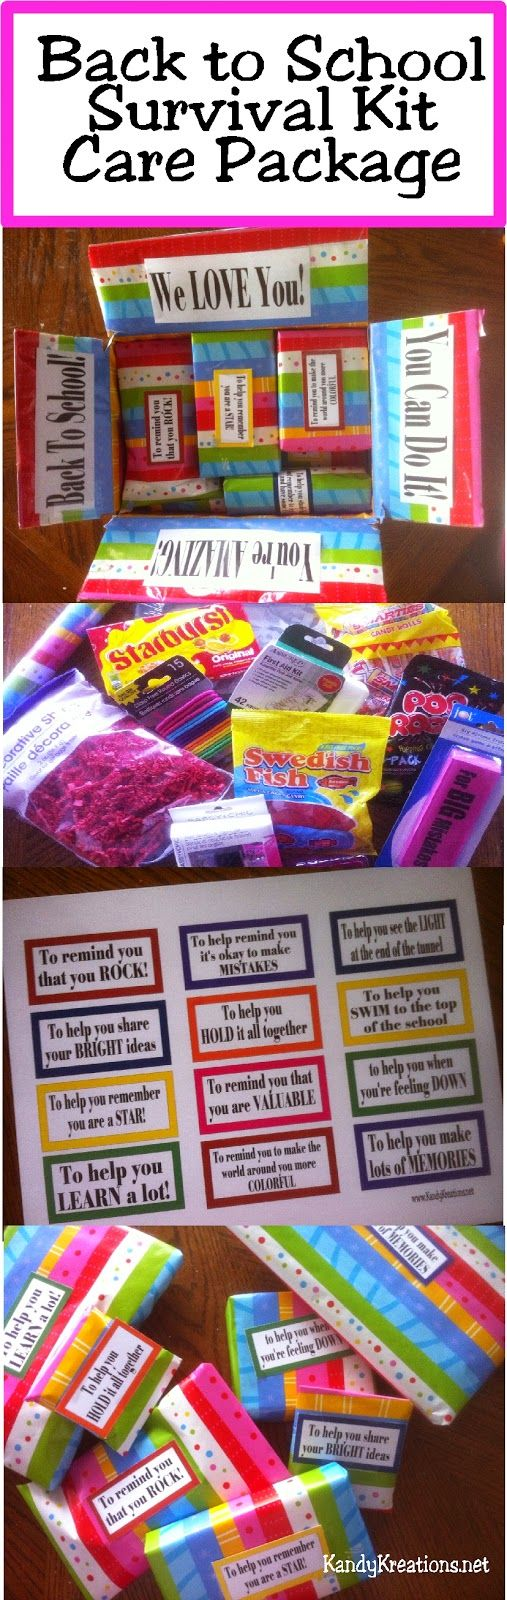 Pics photos funny college survival kit ideas - Celebrate Your College Freshman S First Day Of School With A Care Package From Home This